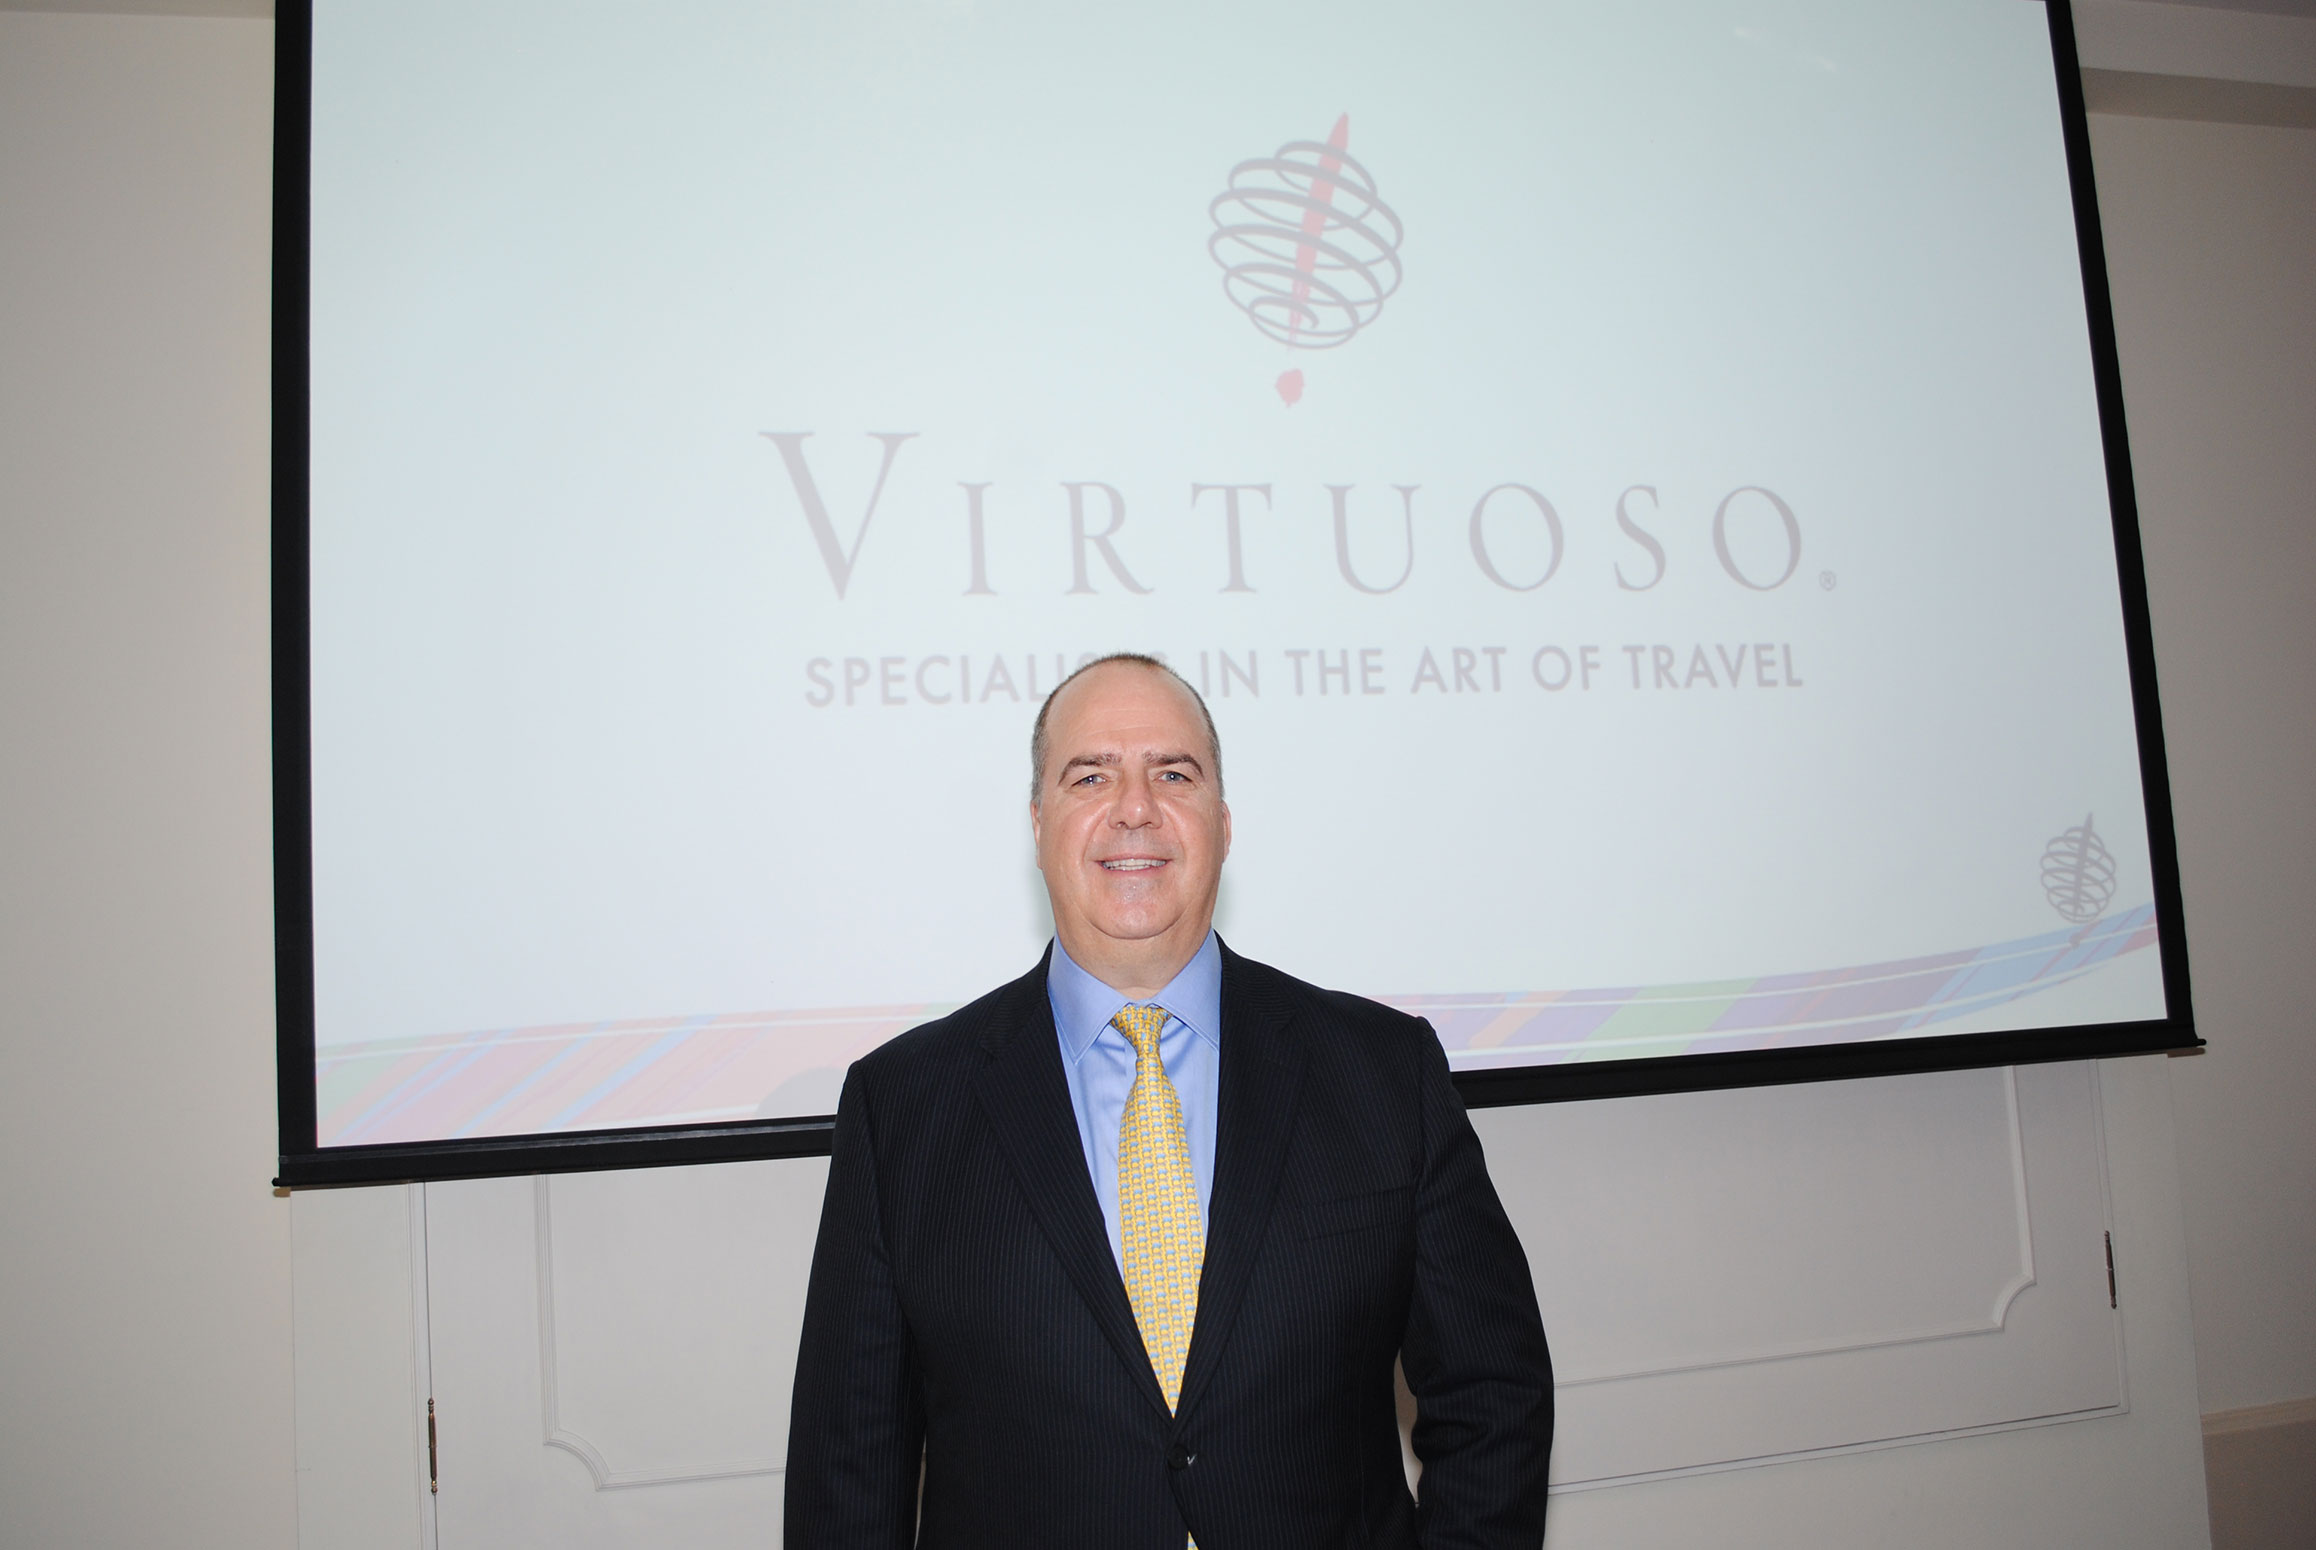 Matthew Upchurch, CEO de Virtuoso